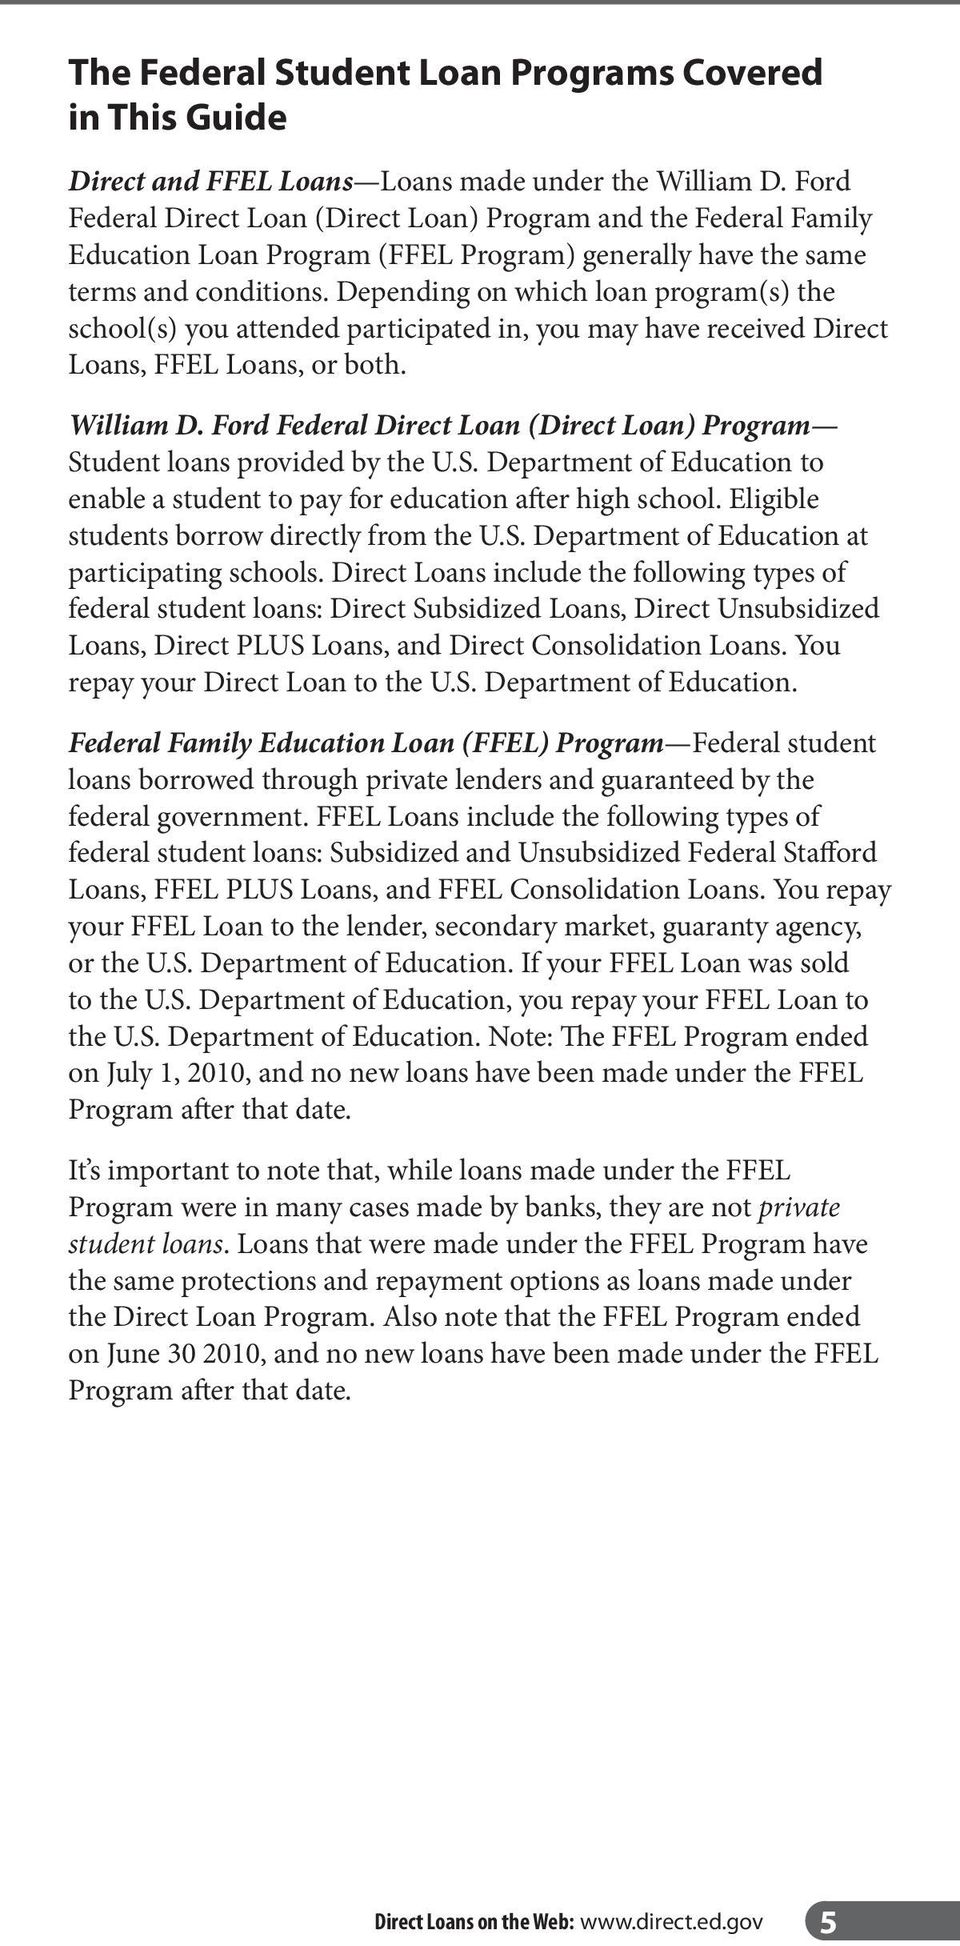 Depending on which loan program(s) the school(s) you attended participated in, you may have received Direct Loans, FFEL Loans, or both. William D.